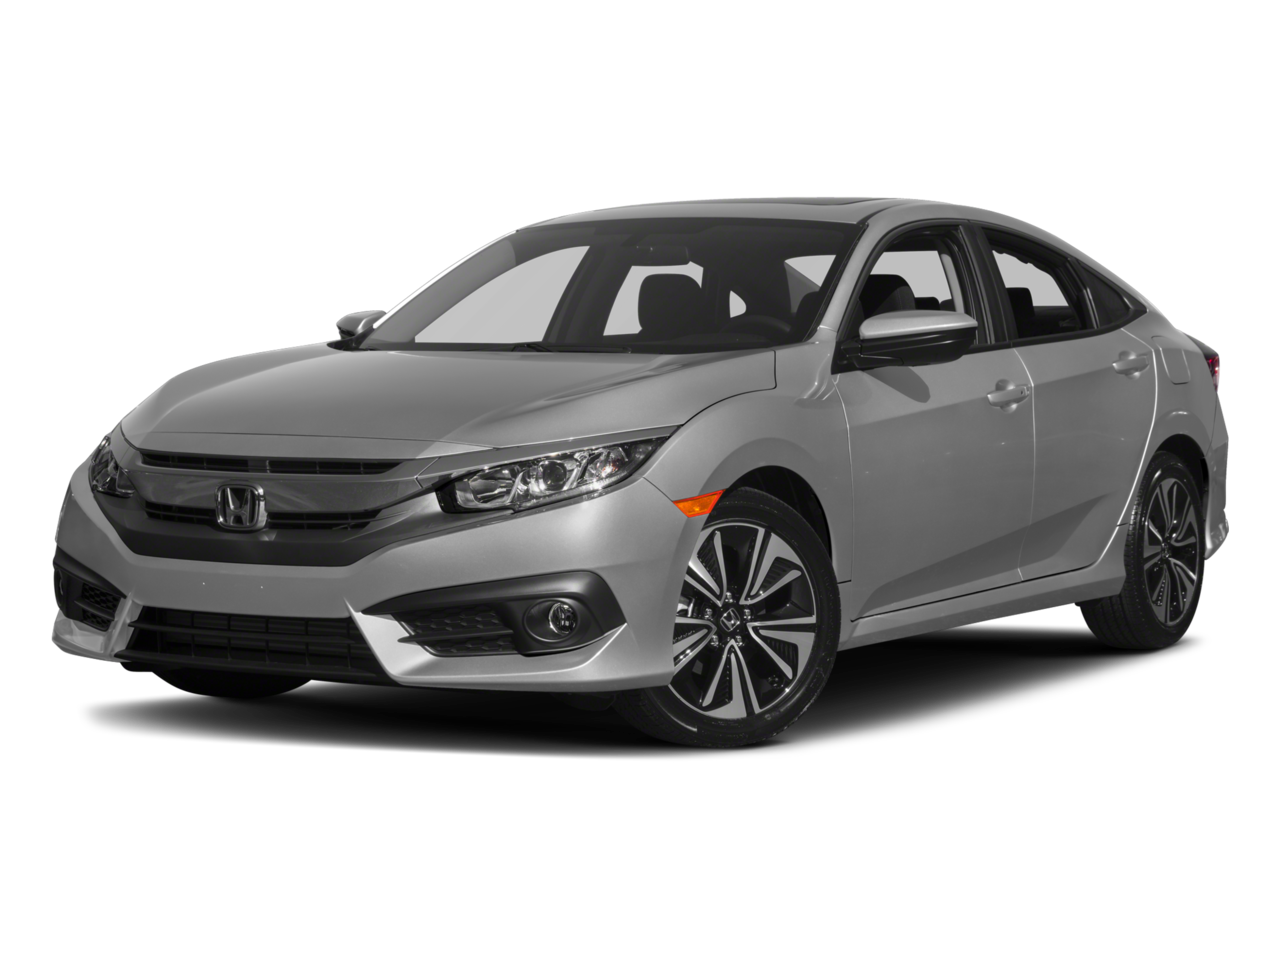 2017 honda civic sedan don wessel new car deals for Honda civic specials